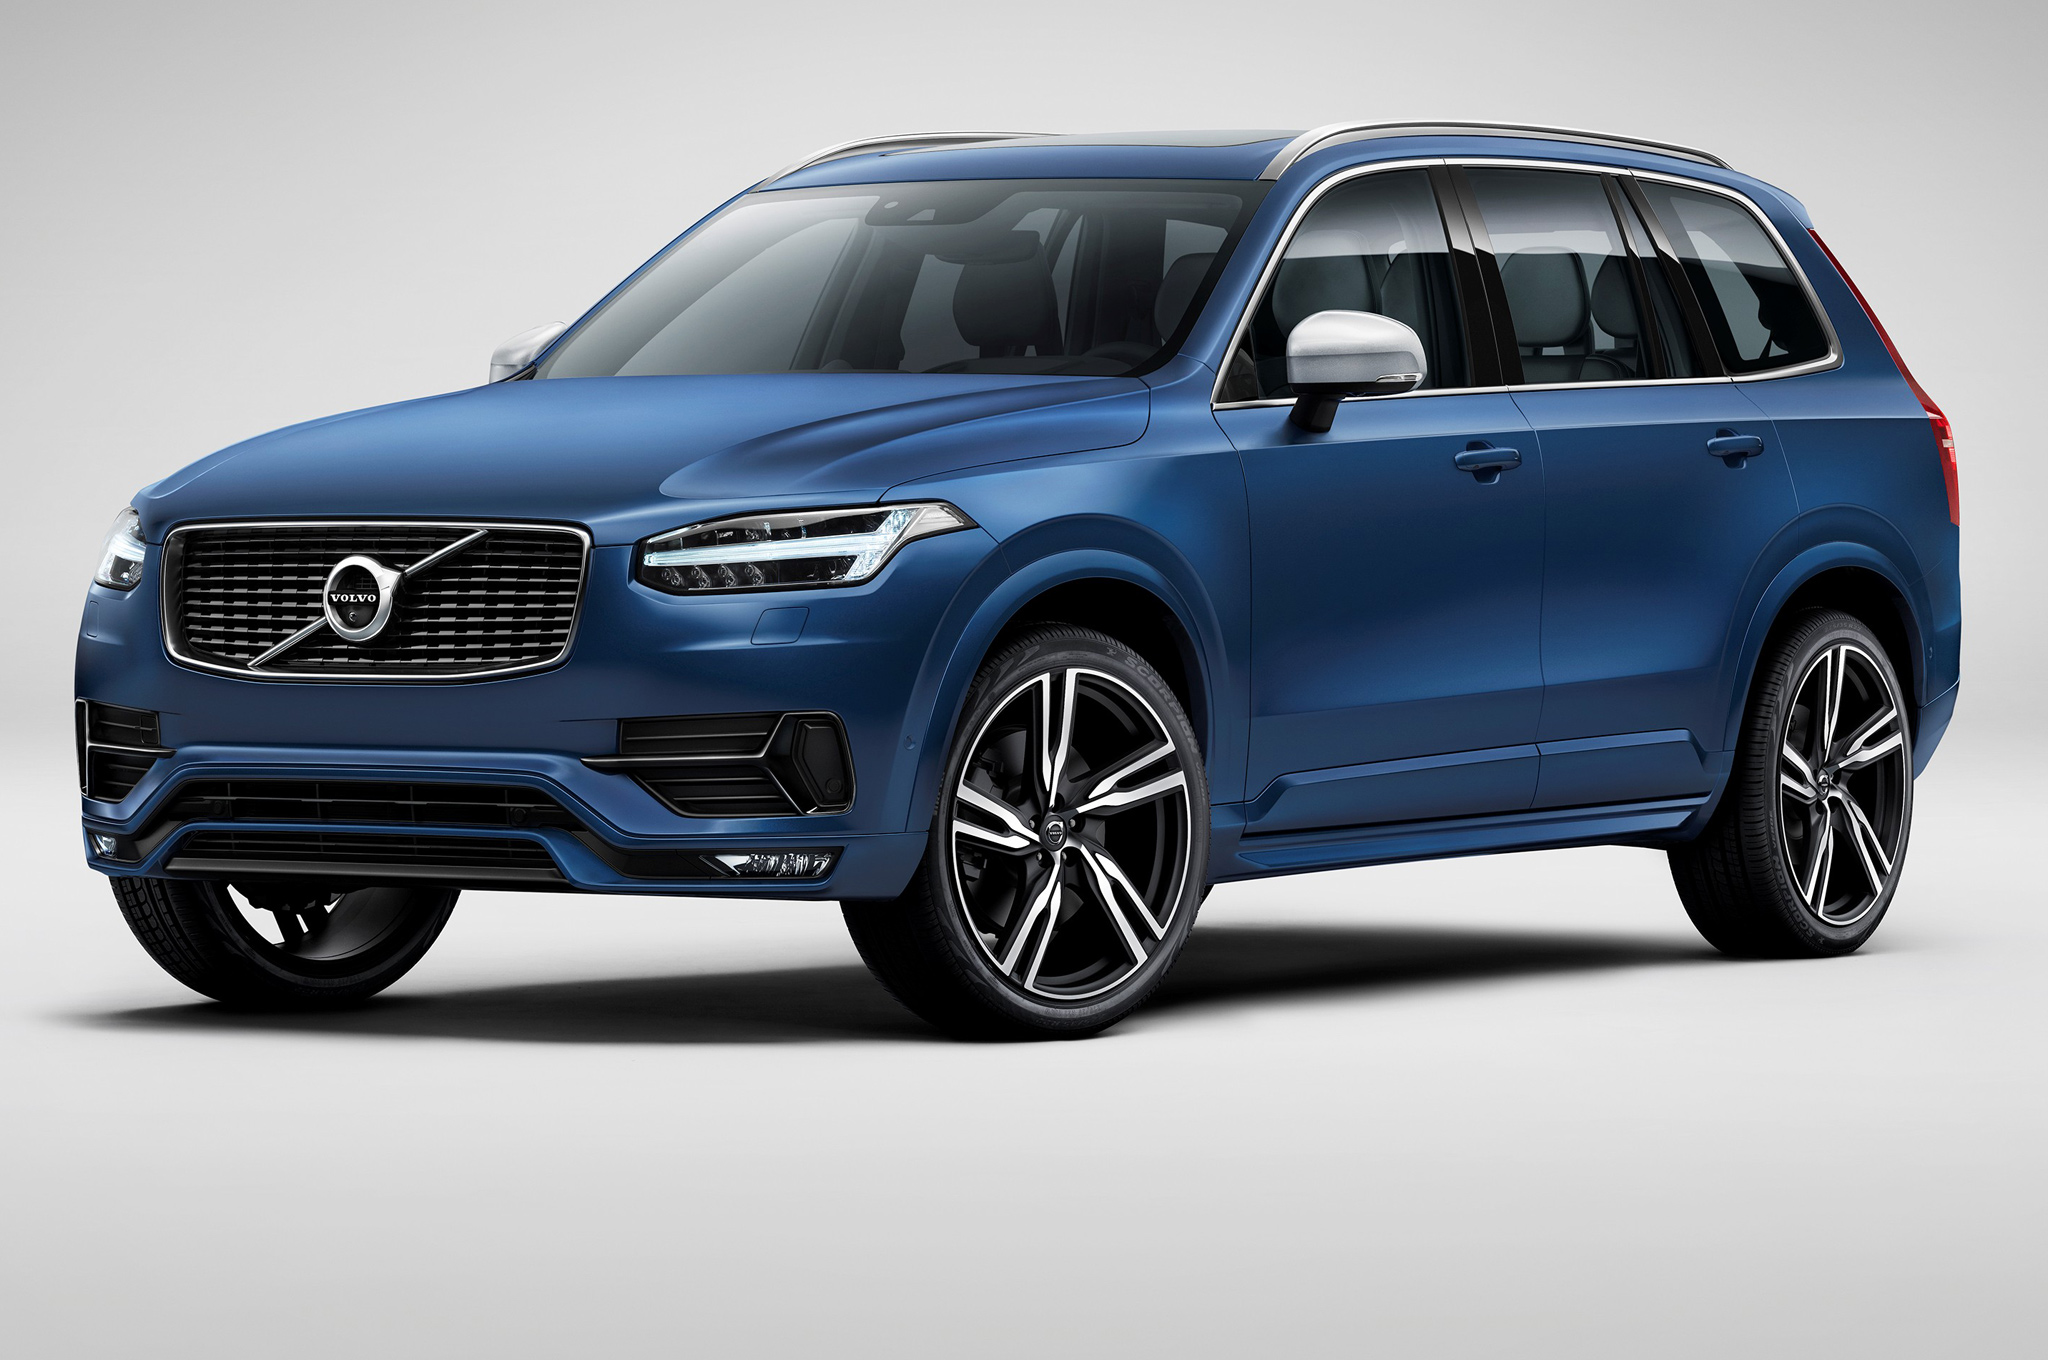 2016 Volvo Xc90 R Design Exterior Profile (Photo 1 of 18)